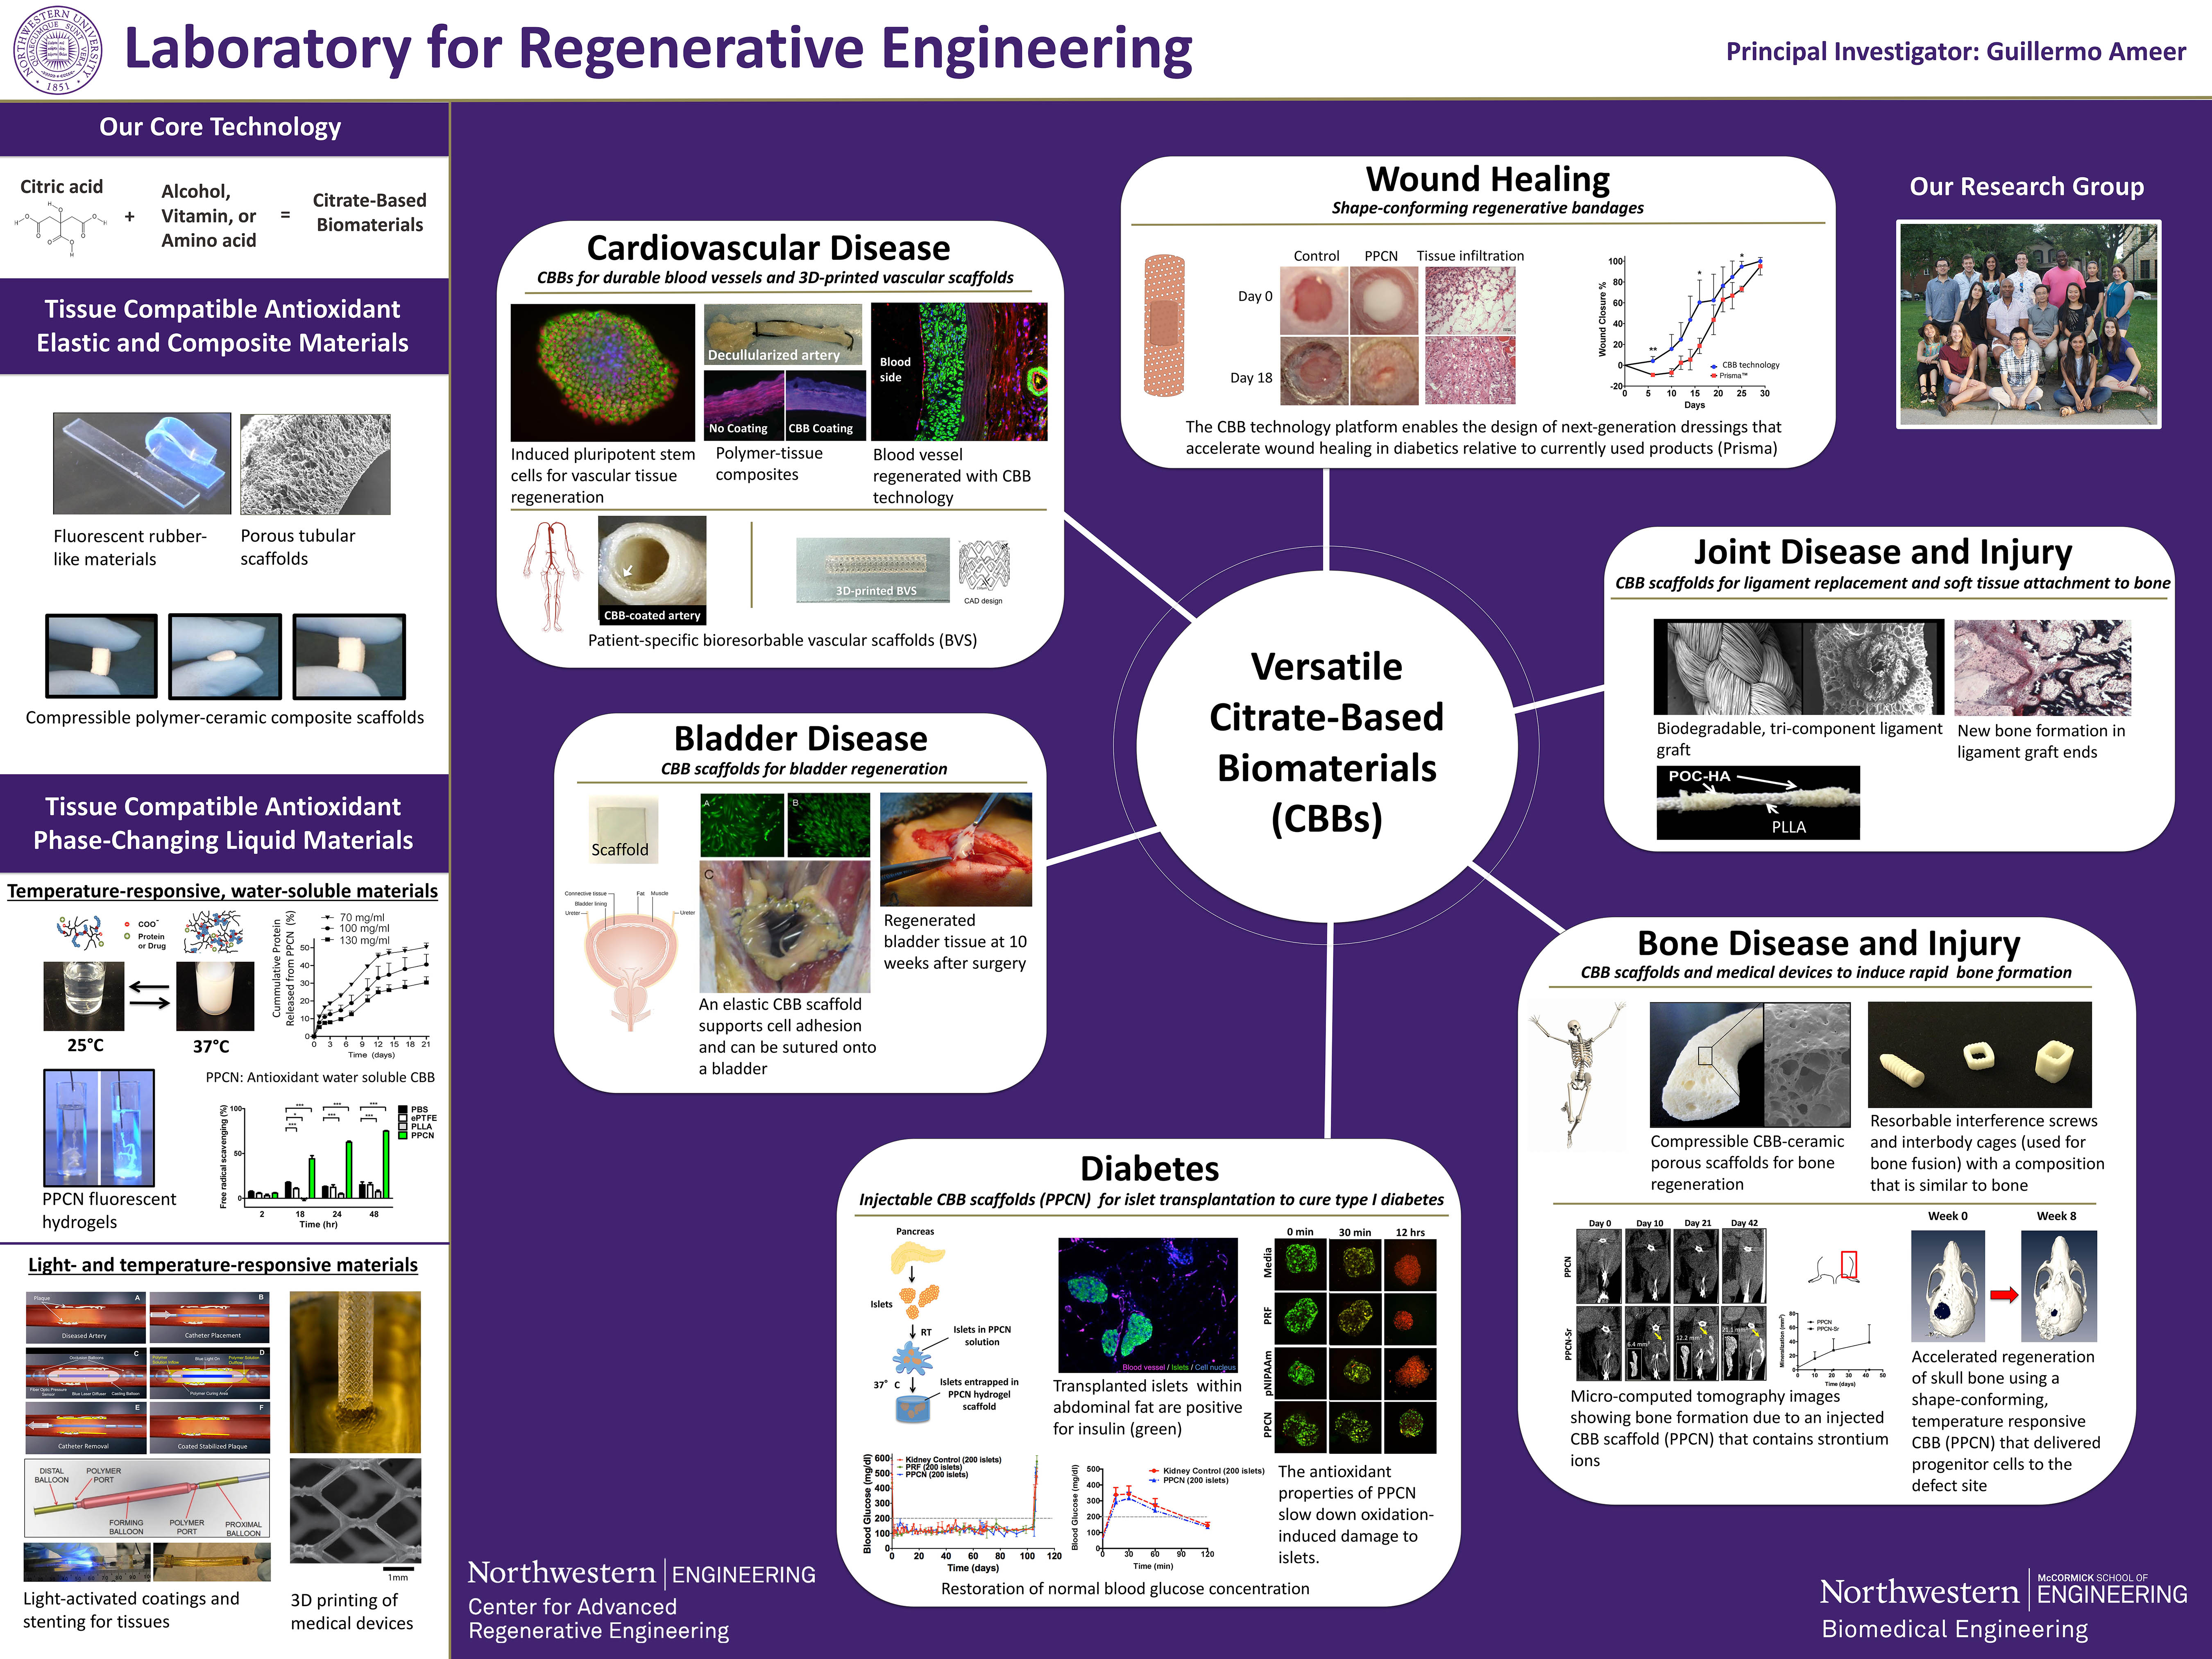 General Lab Research Poster: Oct 2017